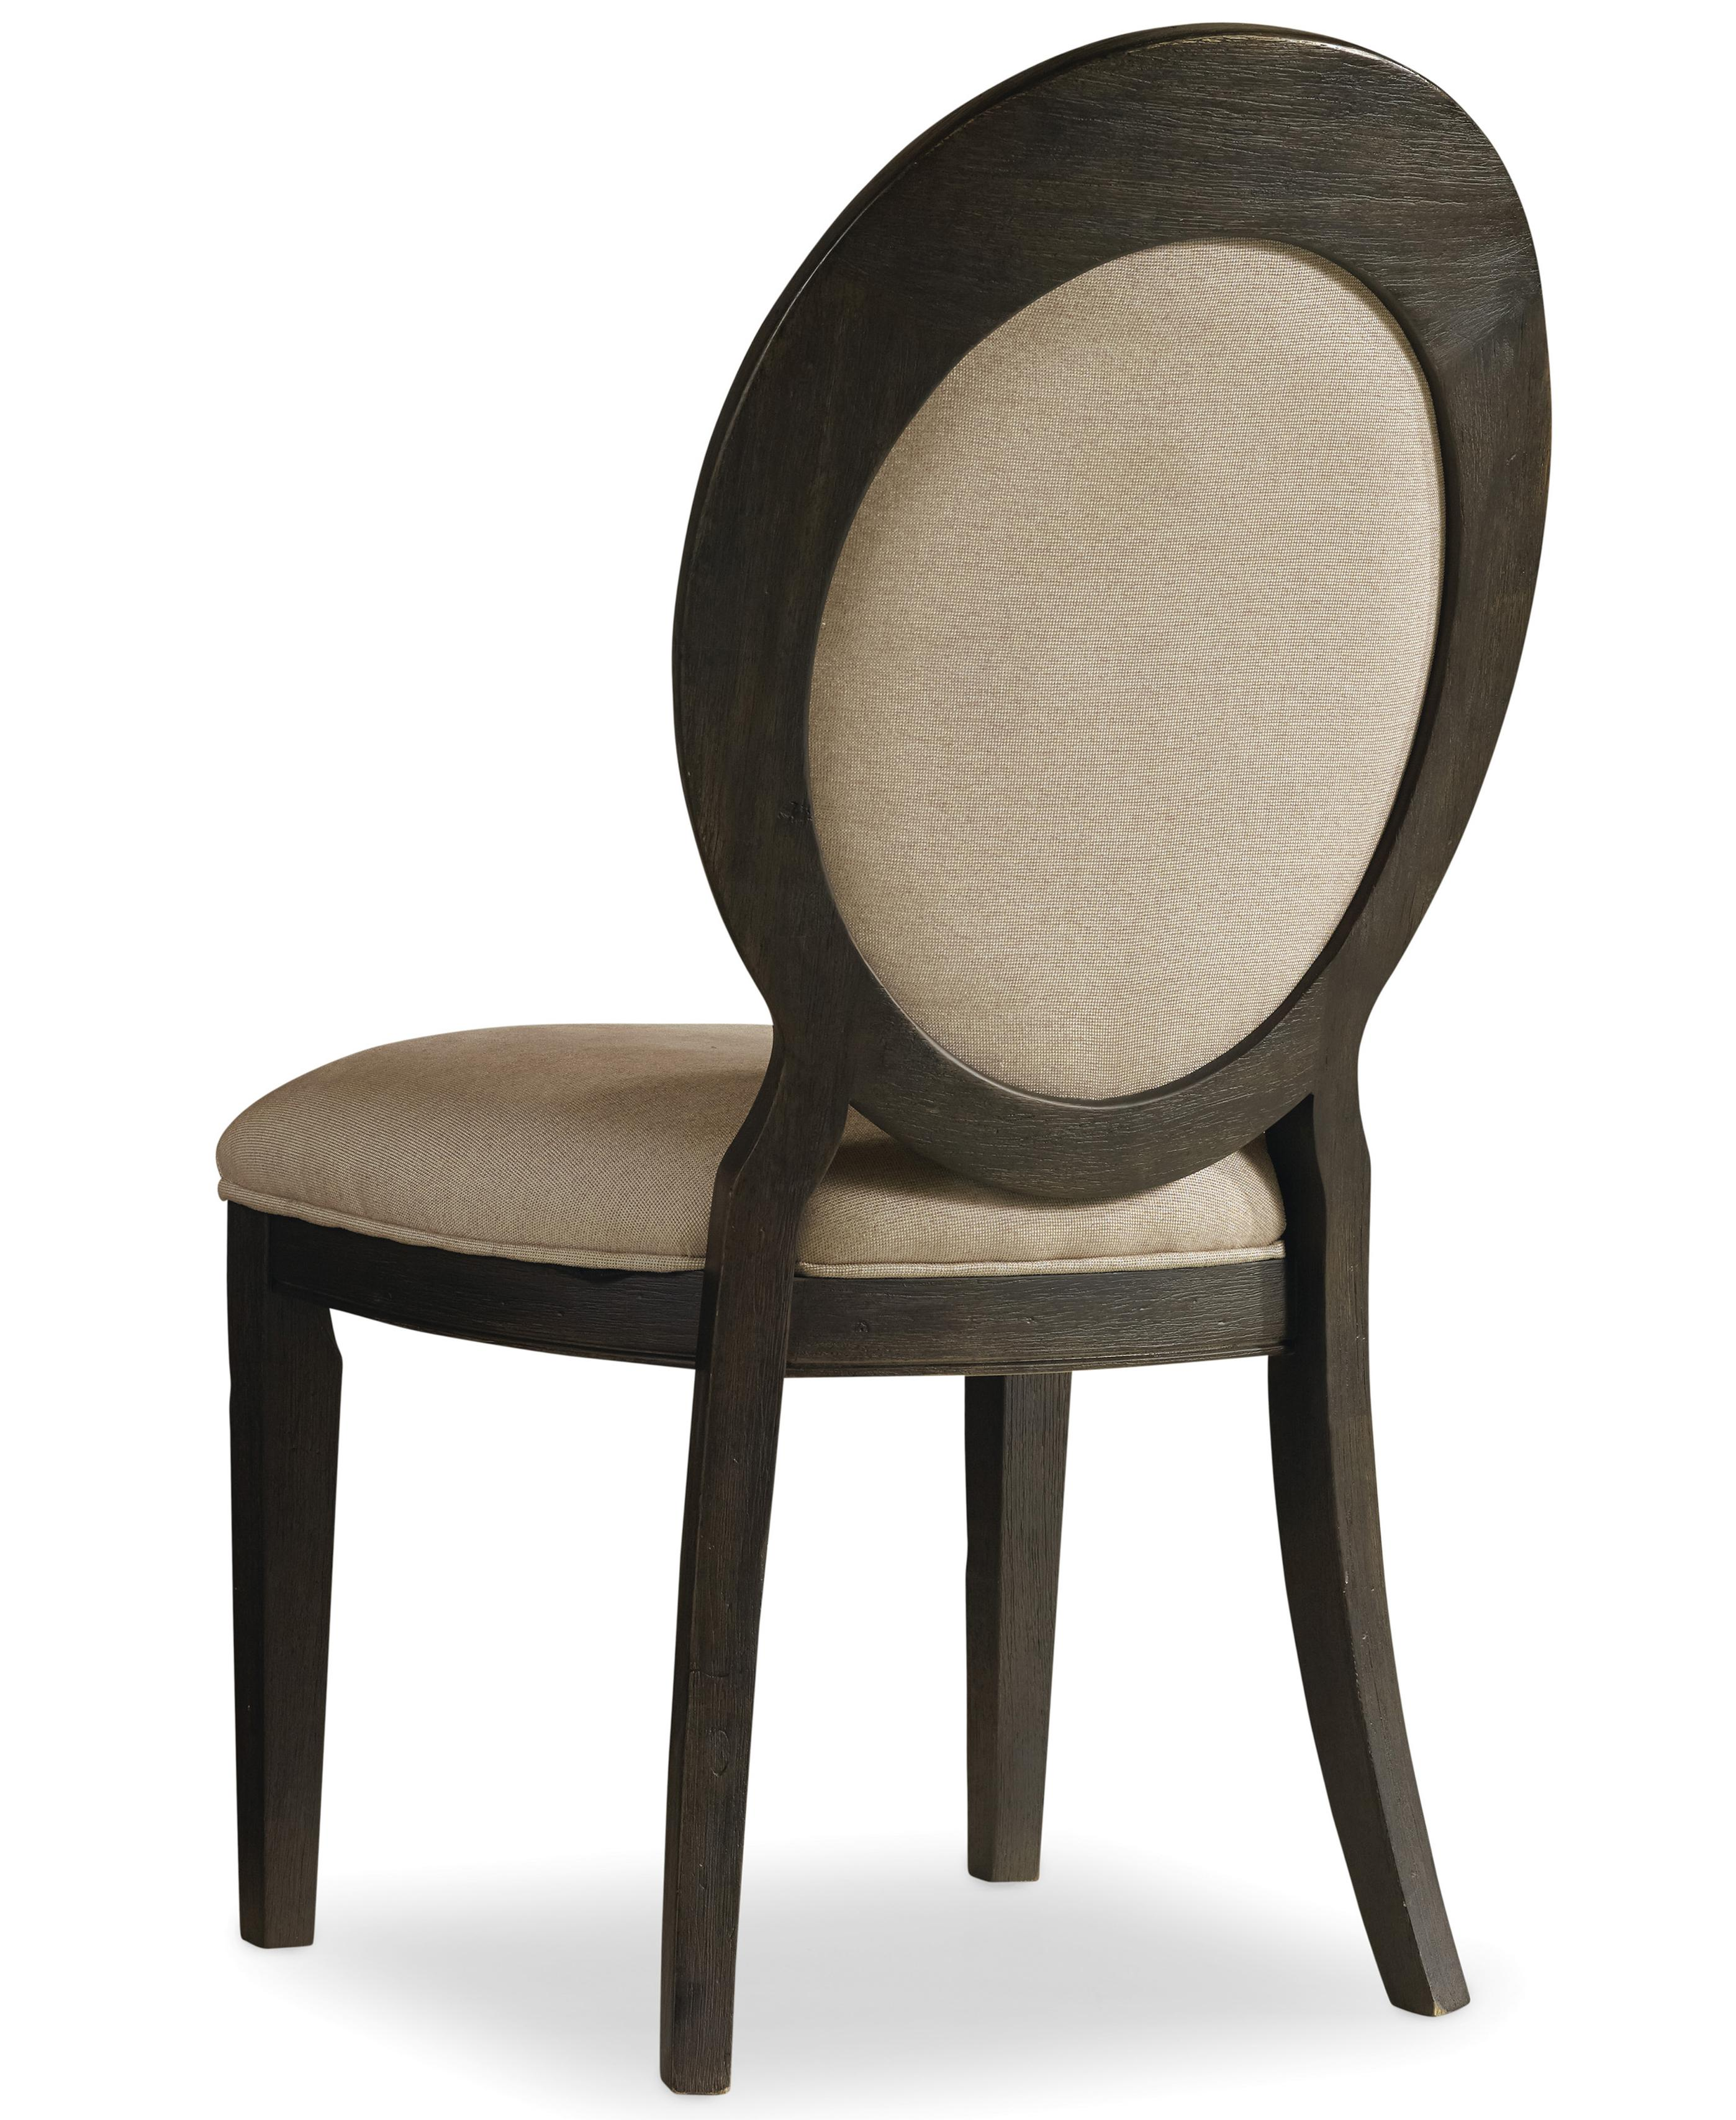 Hooker Furniture Corsica Oval Back Side Chair - Item Number: 5280-75412